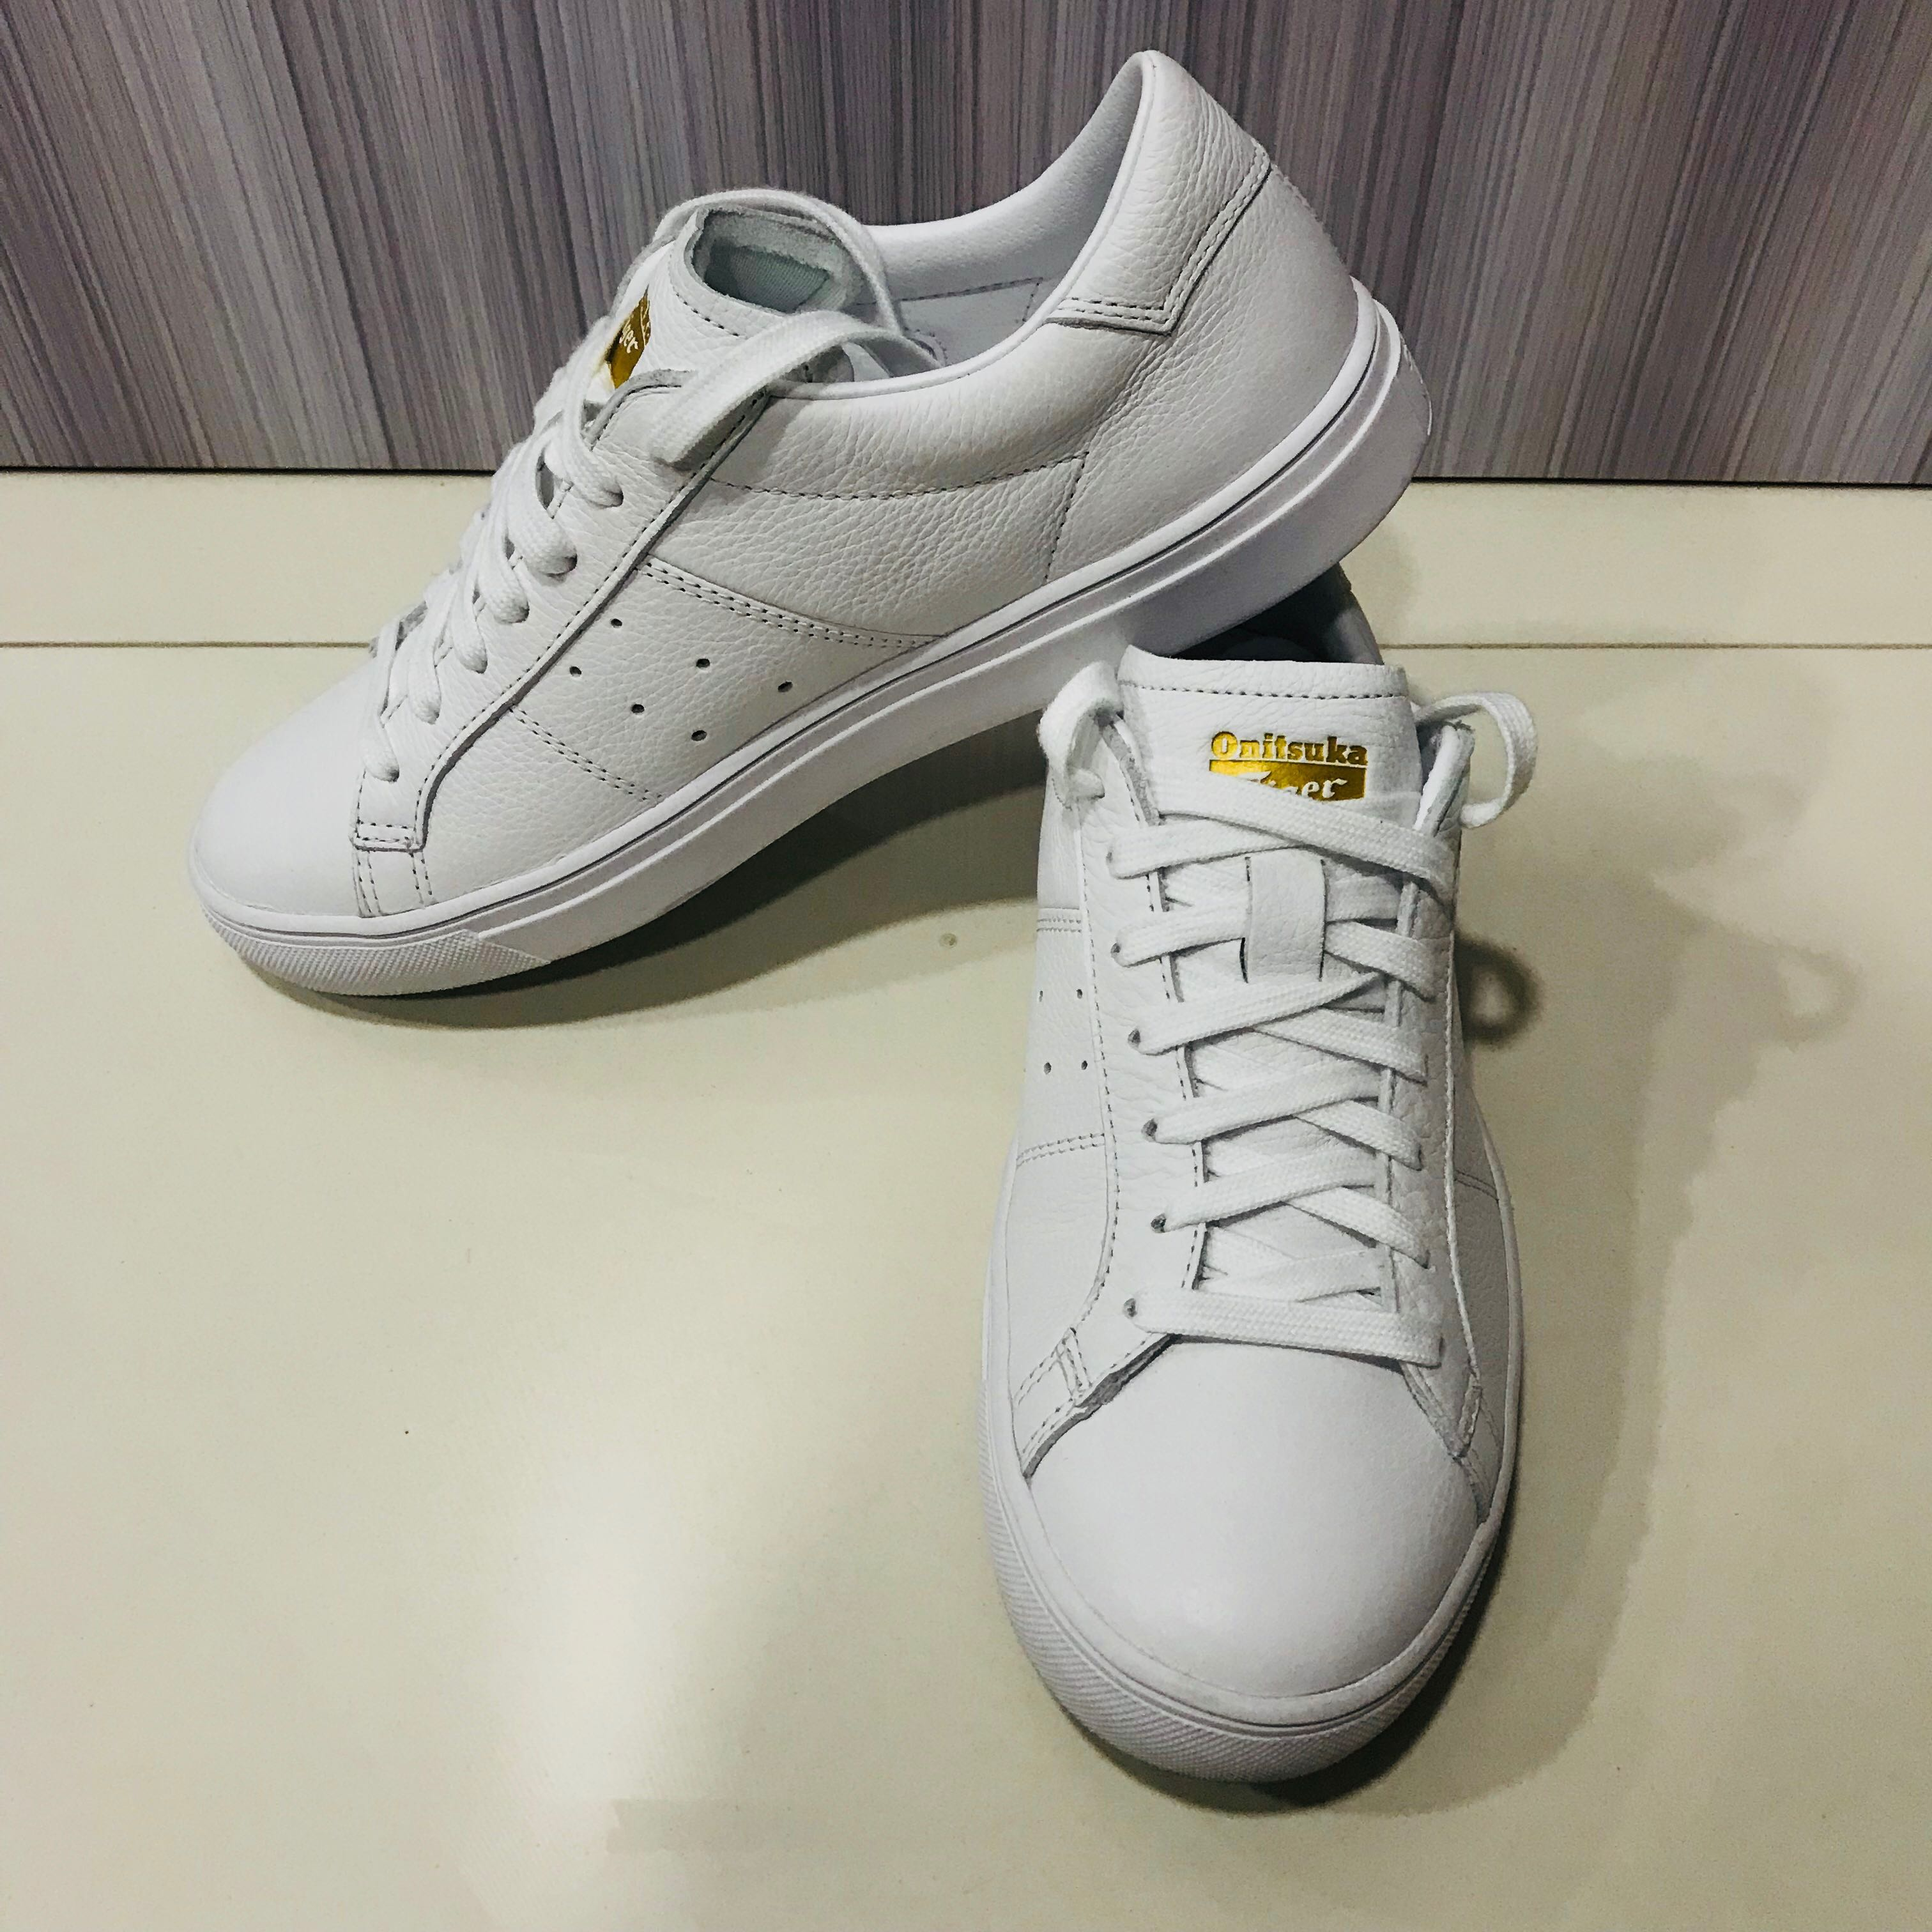 new products c9d59 ef7df Onitsuka Tiger LAWNSHIP 2.0  Authentic , Men s Fashion, Footwear, Sneakers  on Carousell